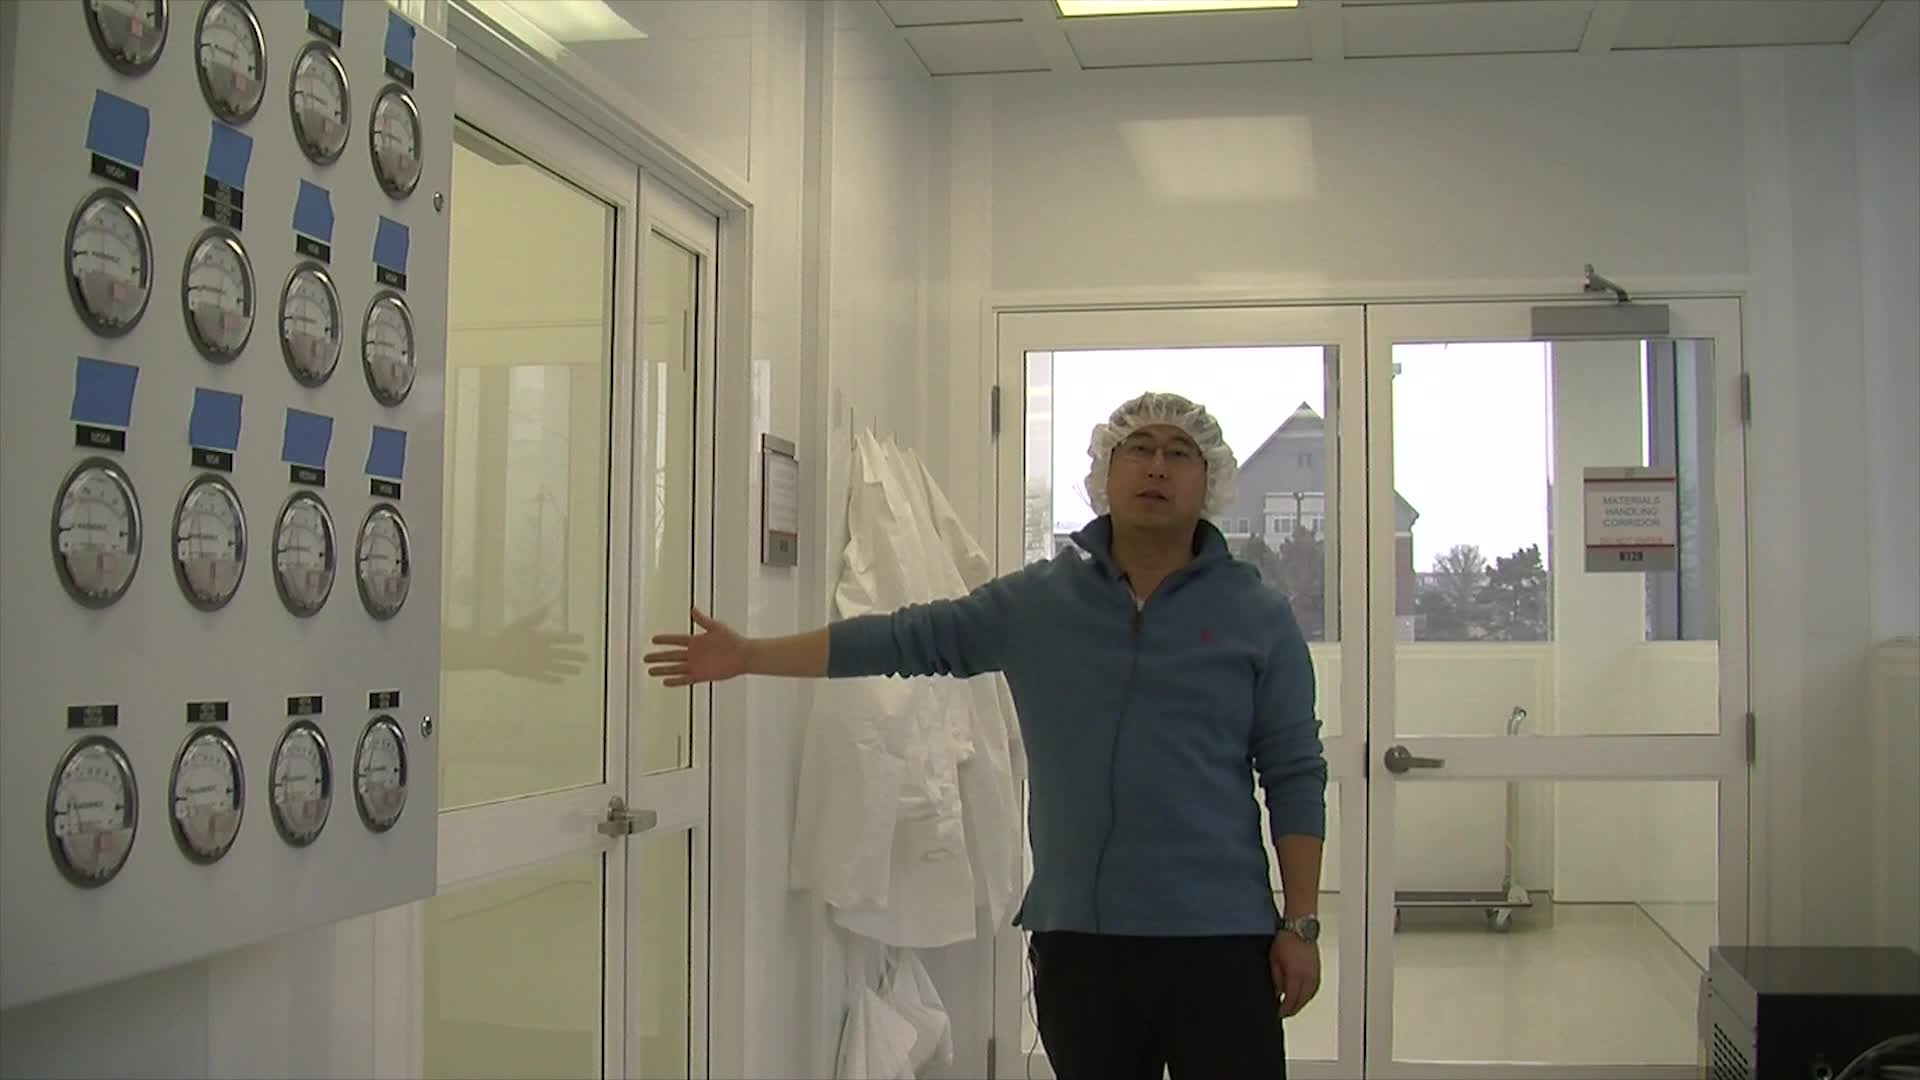 Cleanroom entry